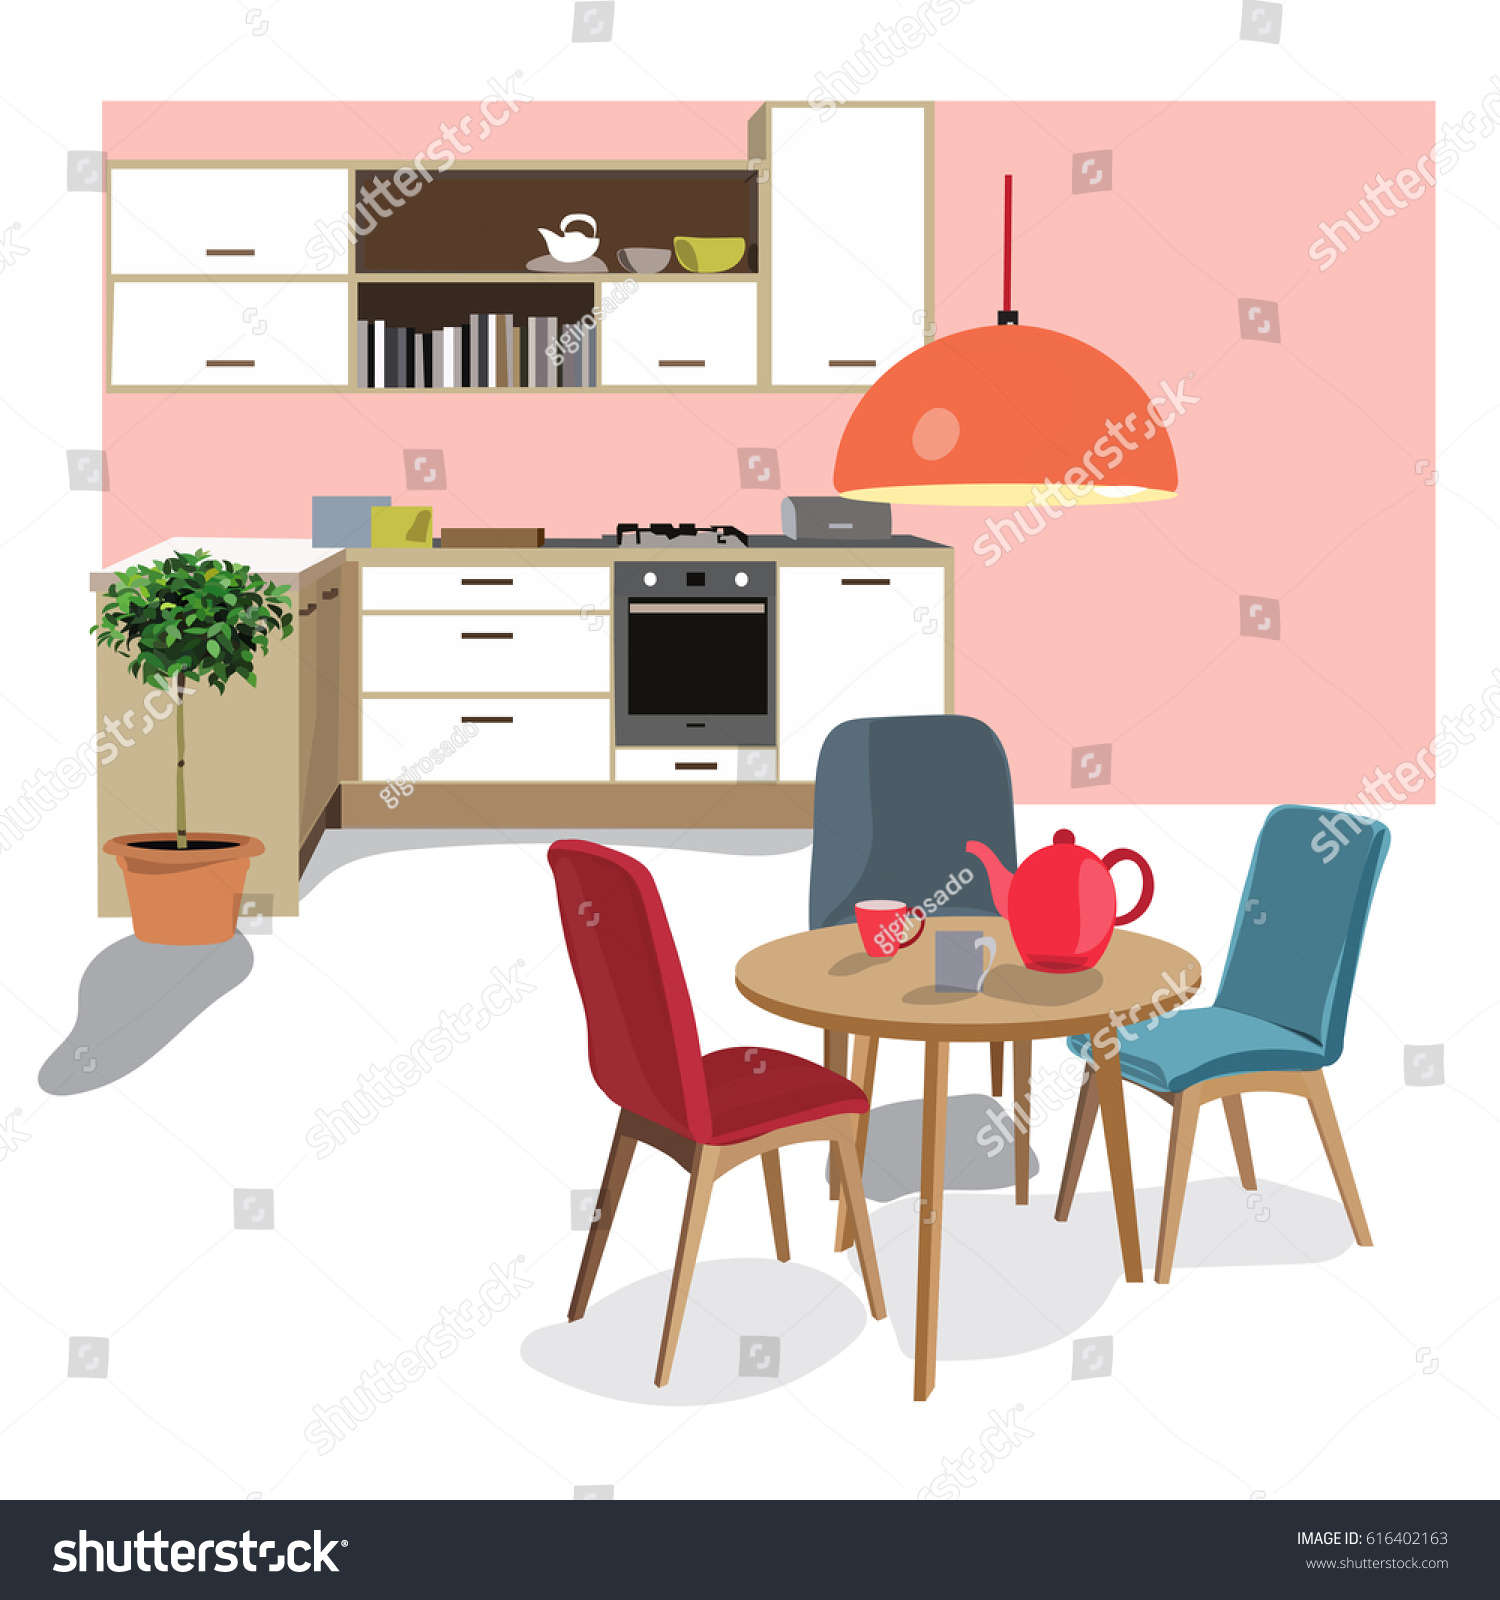 Kitchen Dining Room Illustration Interior Design Home Scenemodern House Chair Table